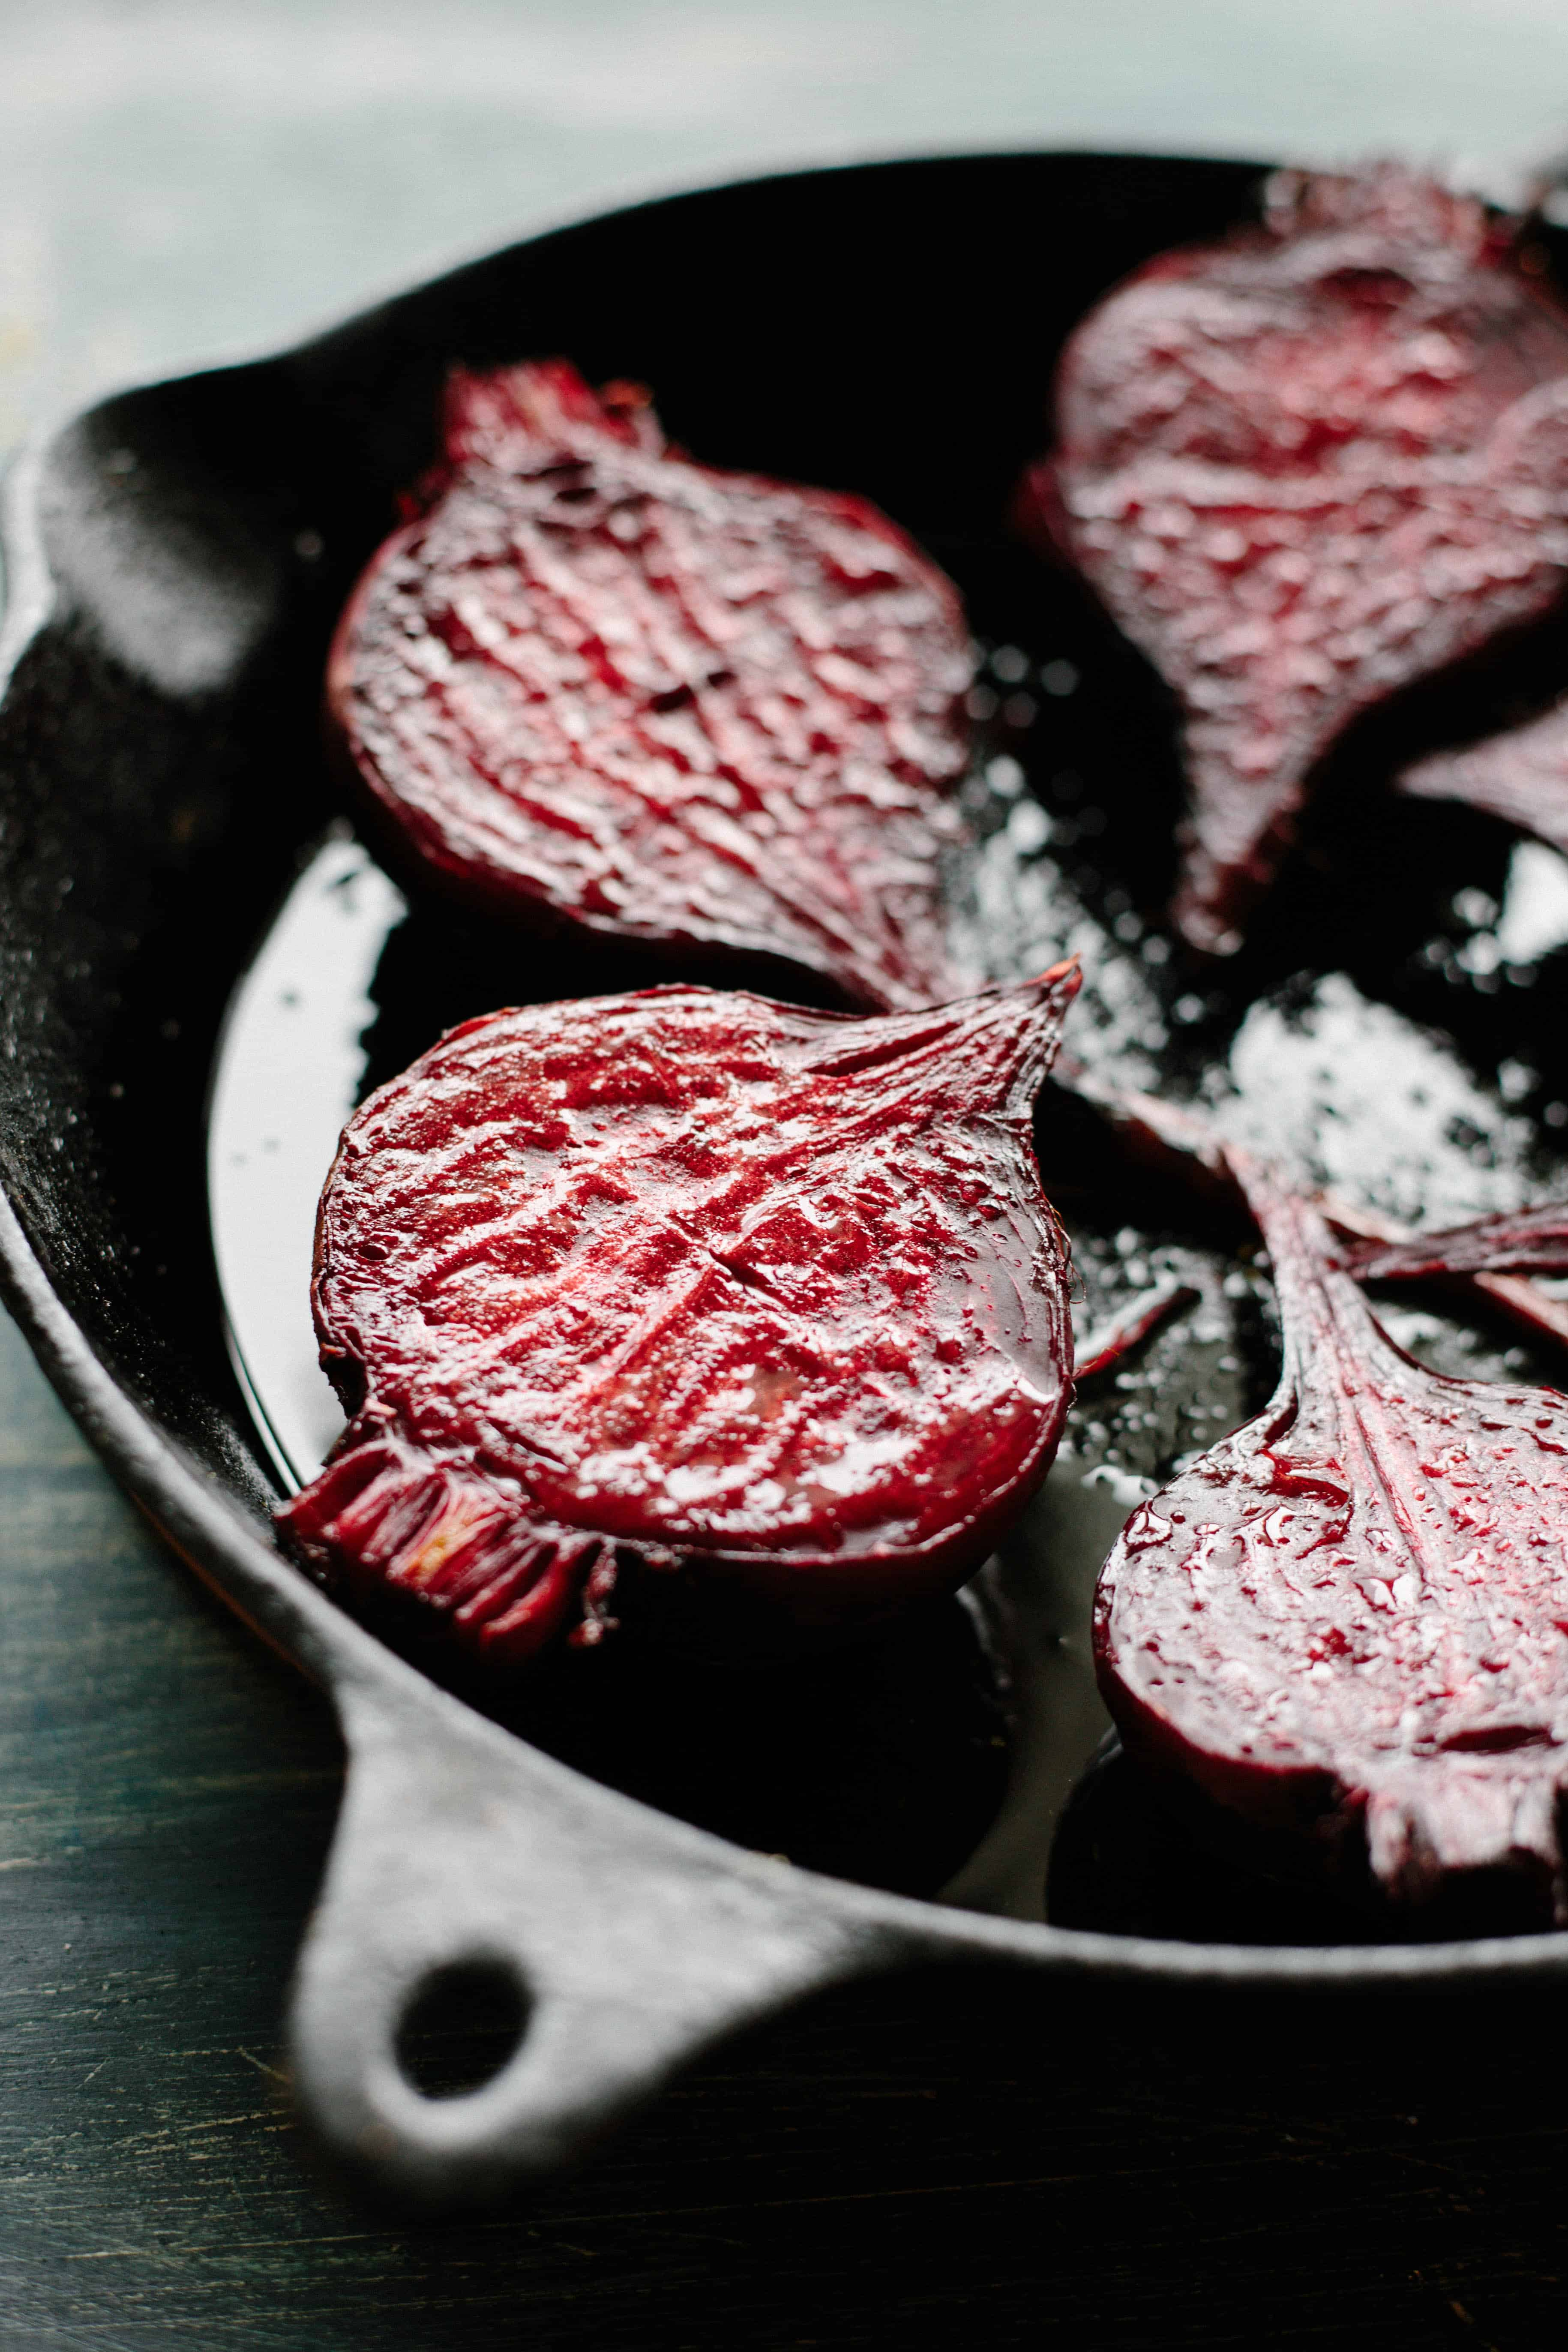 Roasted Beets with Avocado Habanero Crema